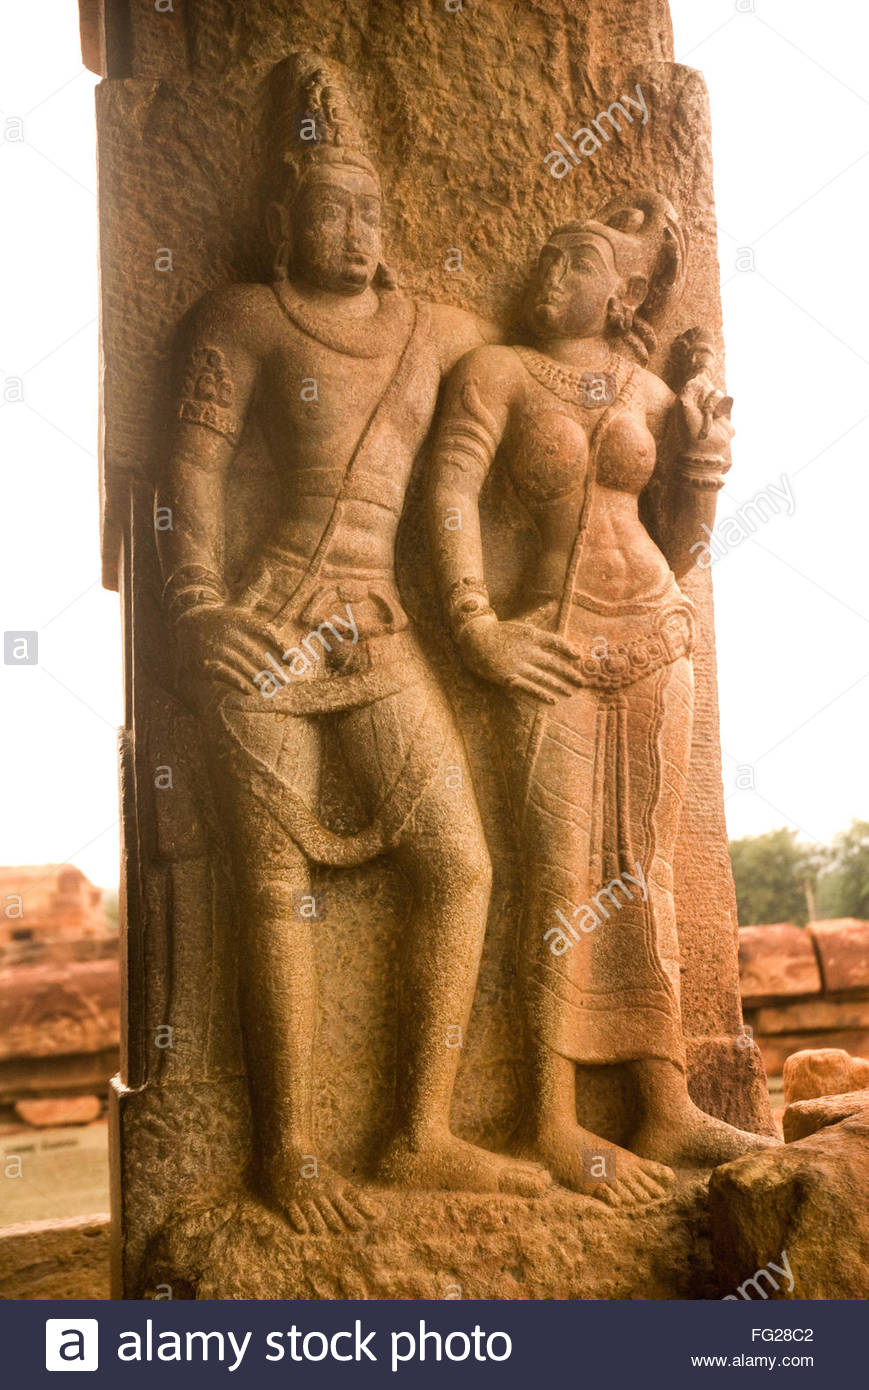 Female Statues Stock Photos  Female Statues Stock Images - Alamy-1669